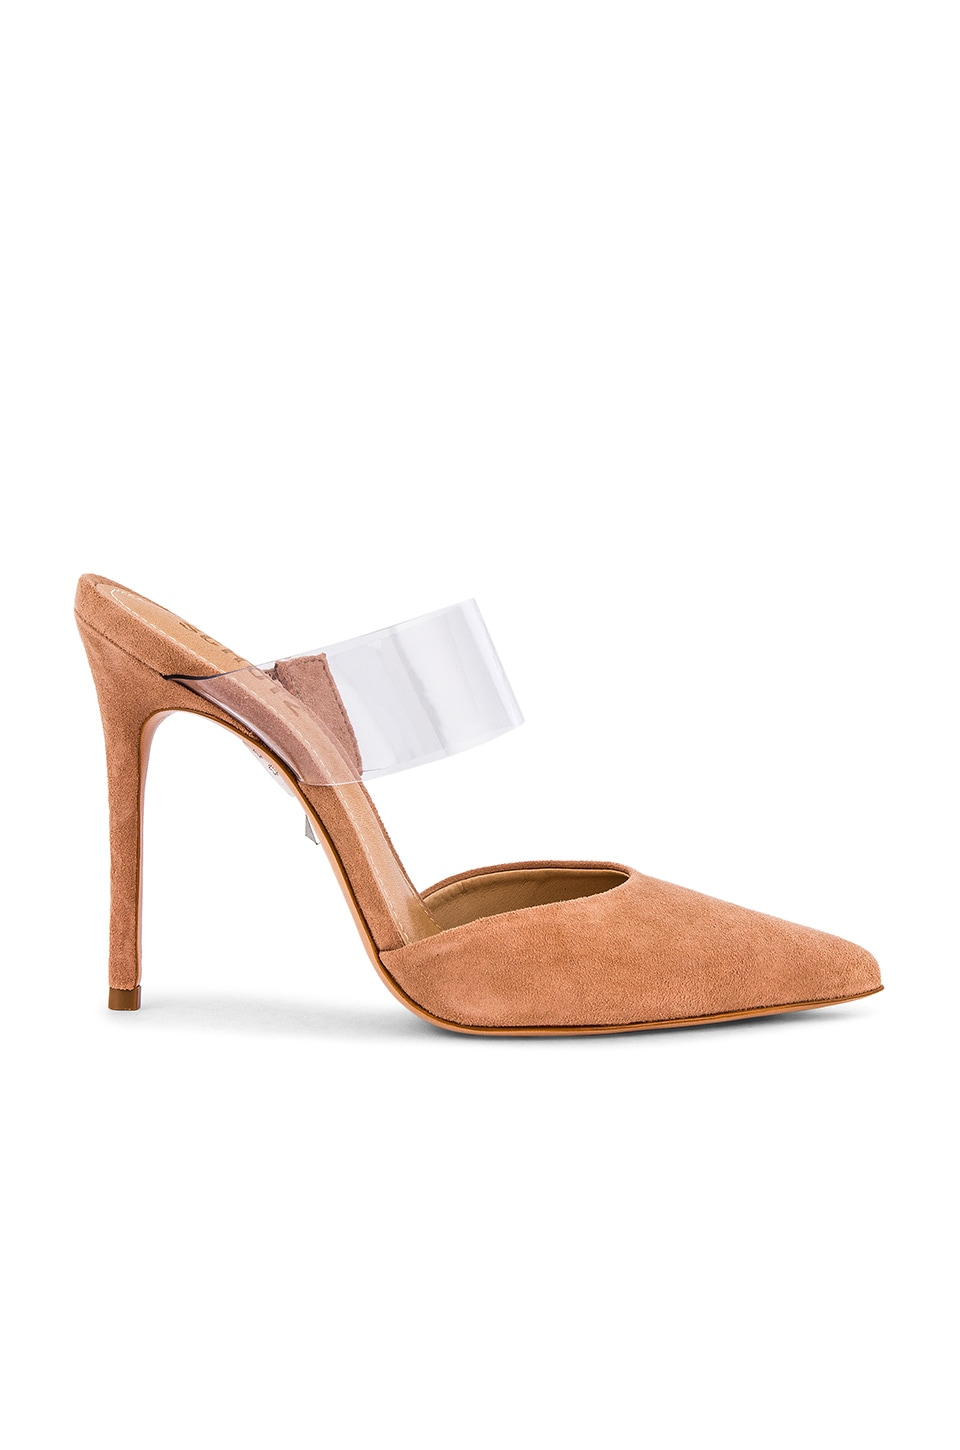 Schutz Sionne Mule in Honey Beige & Vinyl Transparente